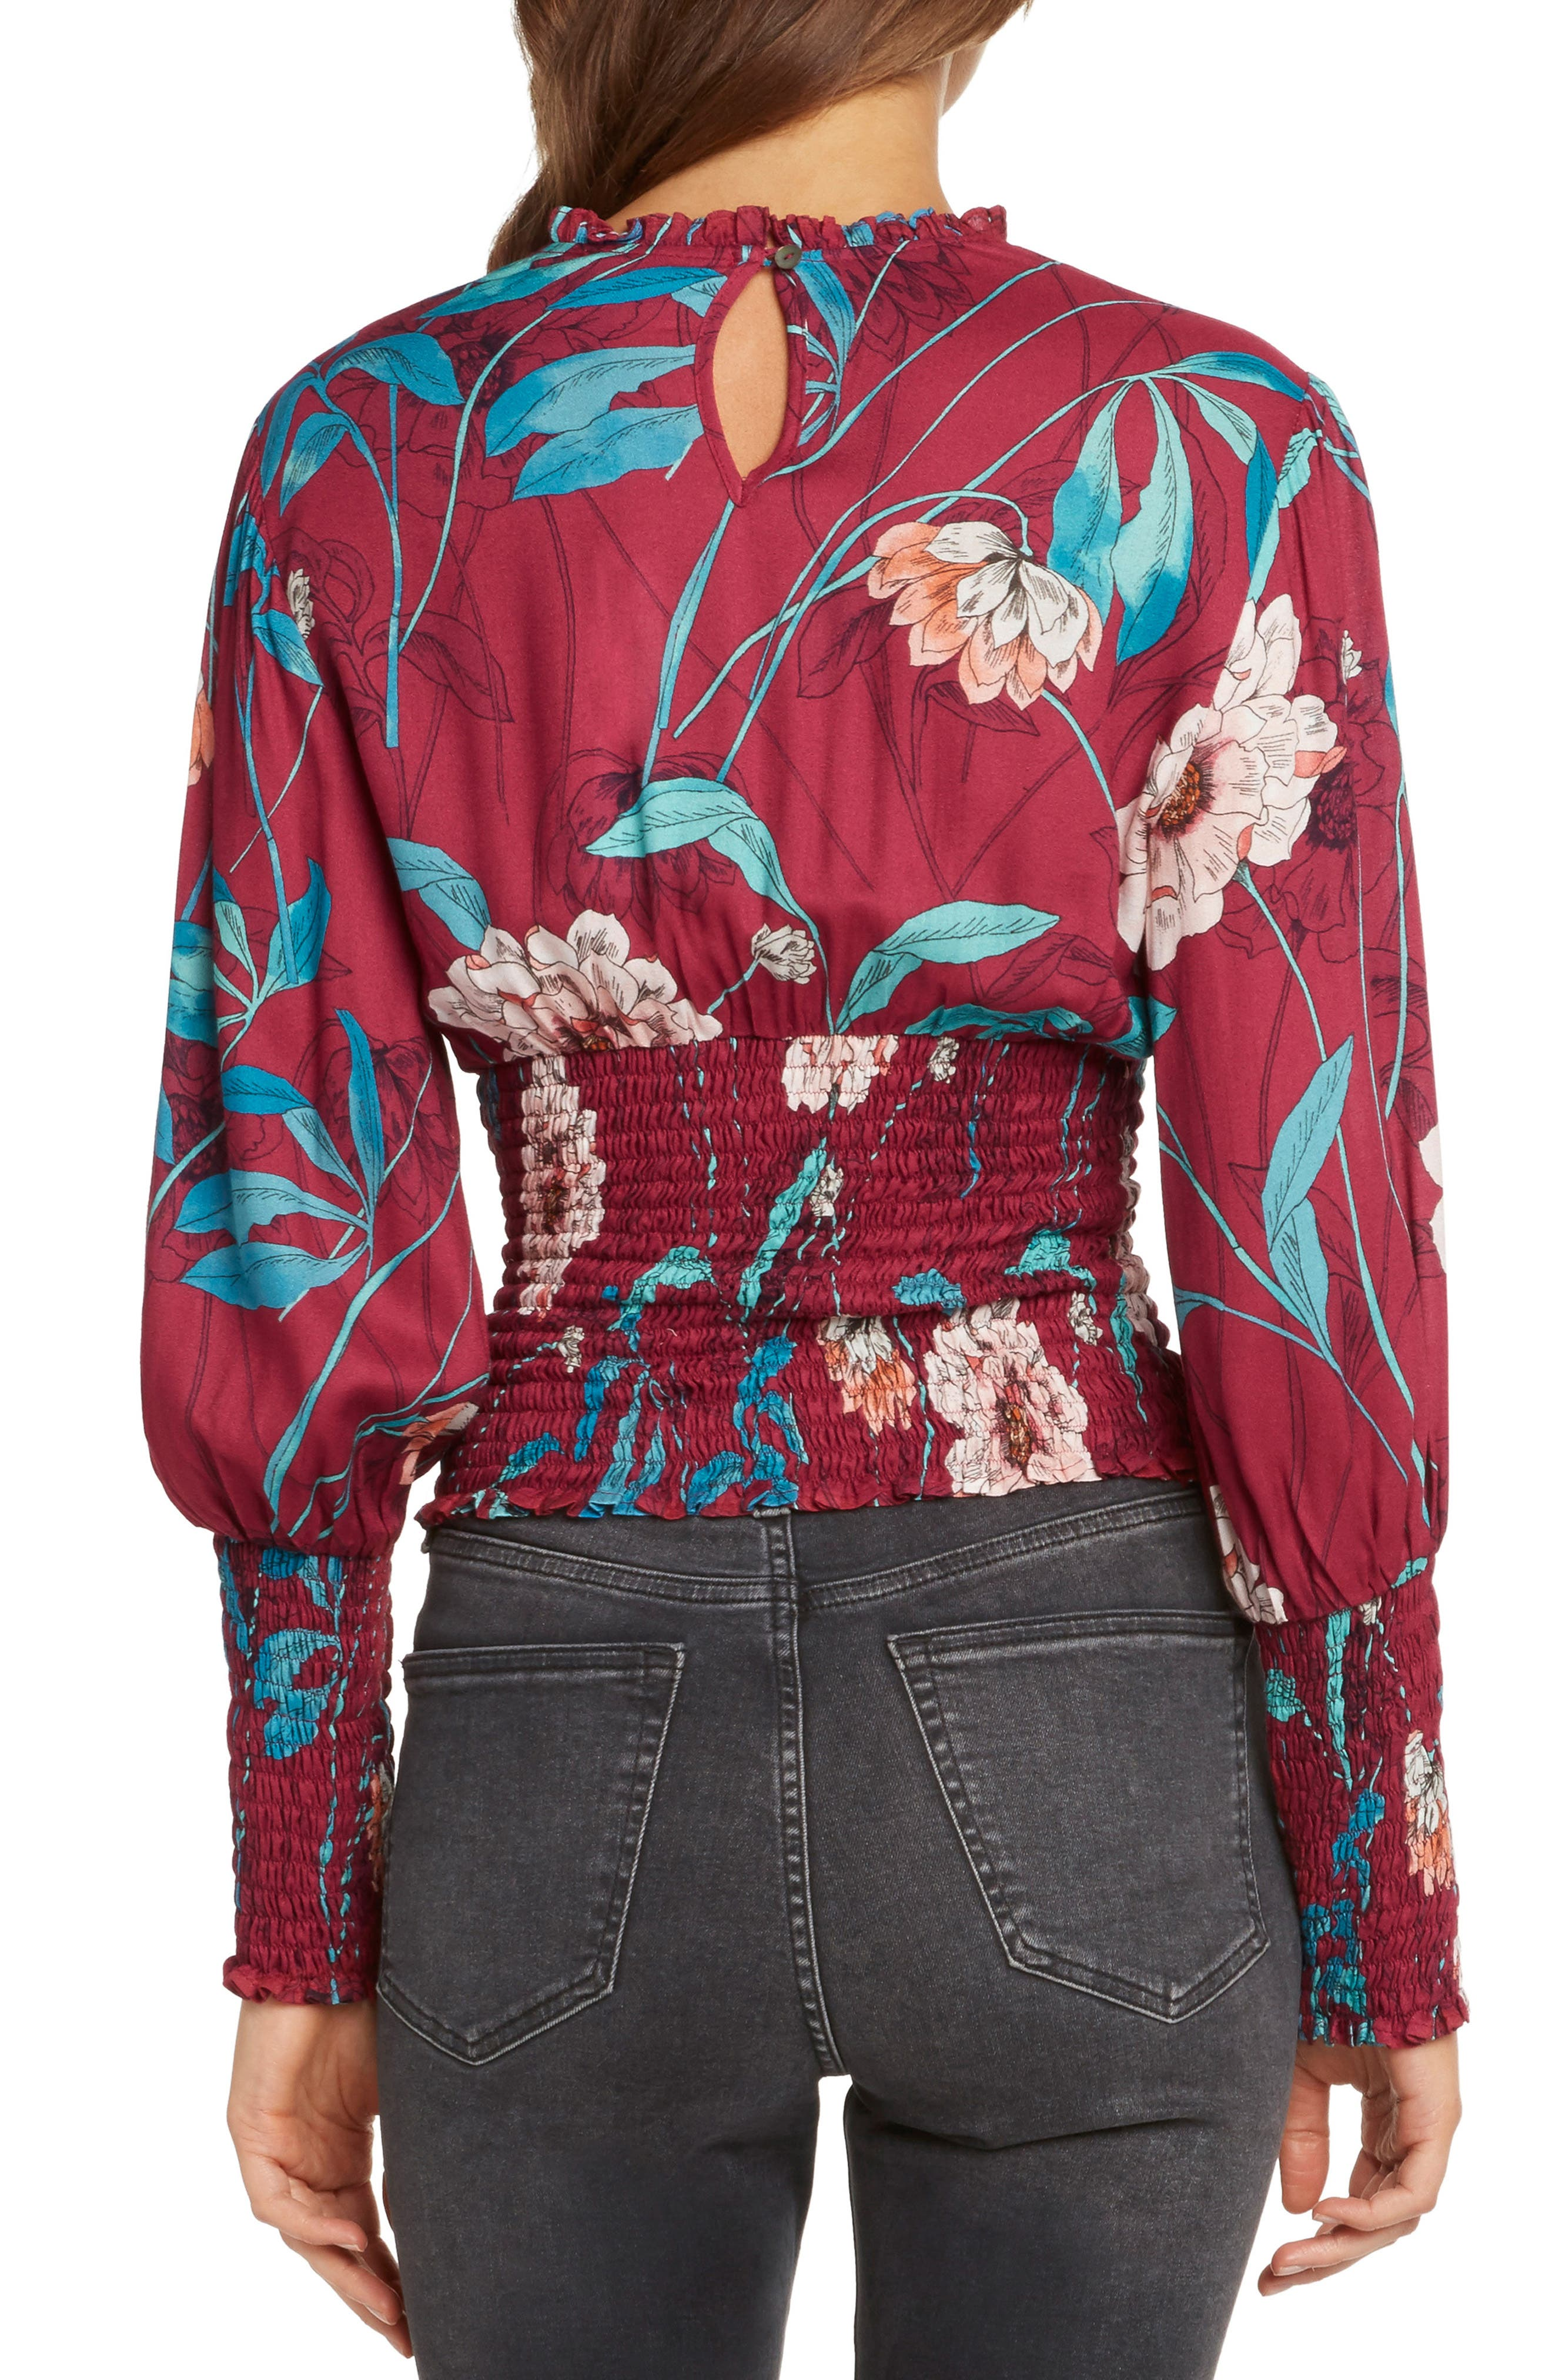 WILLOW & CLAY,                             Print Smocked Waist Blouse,                             Alternate thumbnail 2, color,                             648